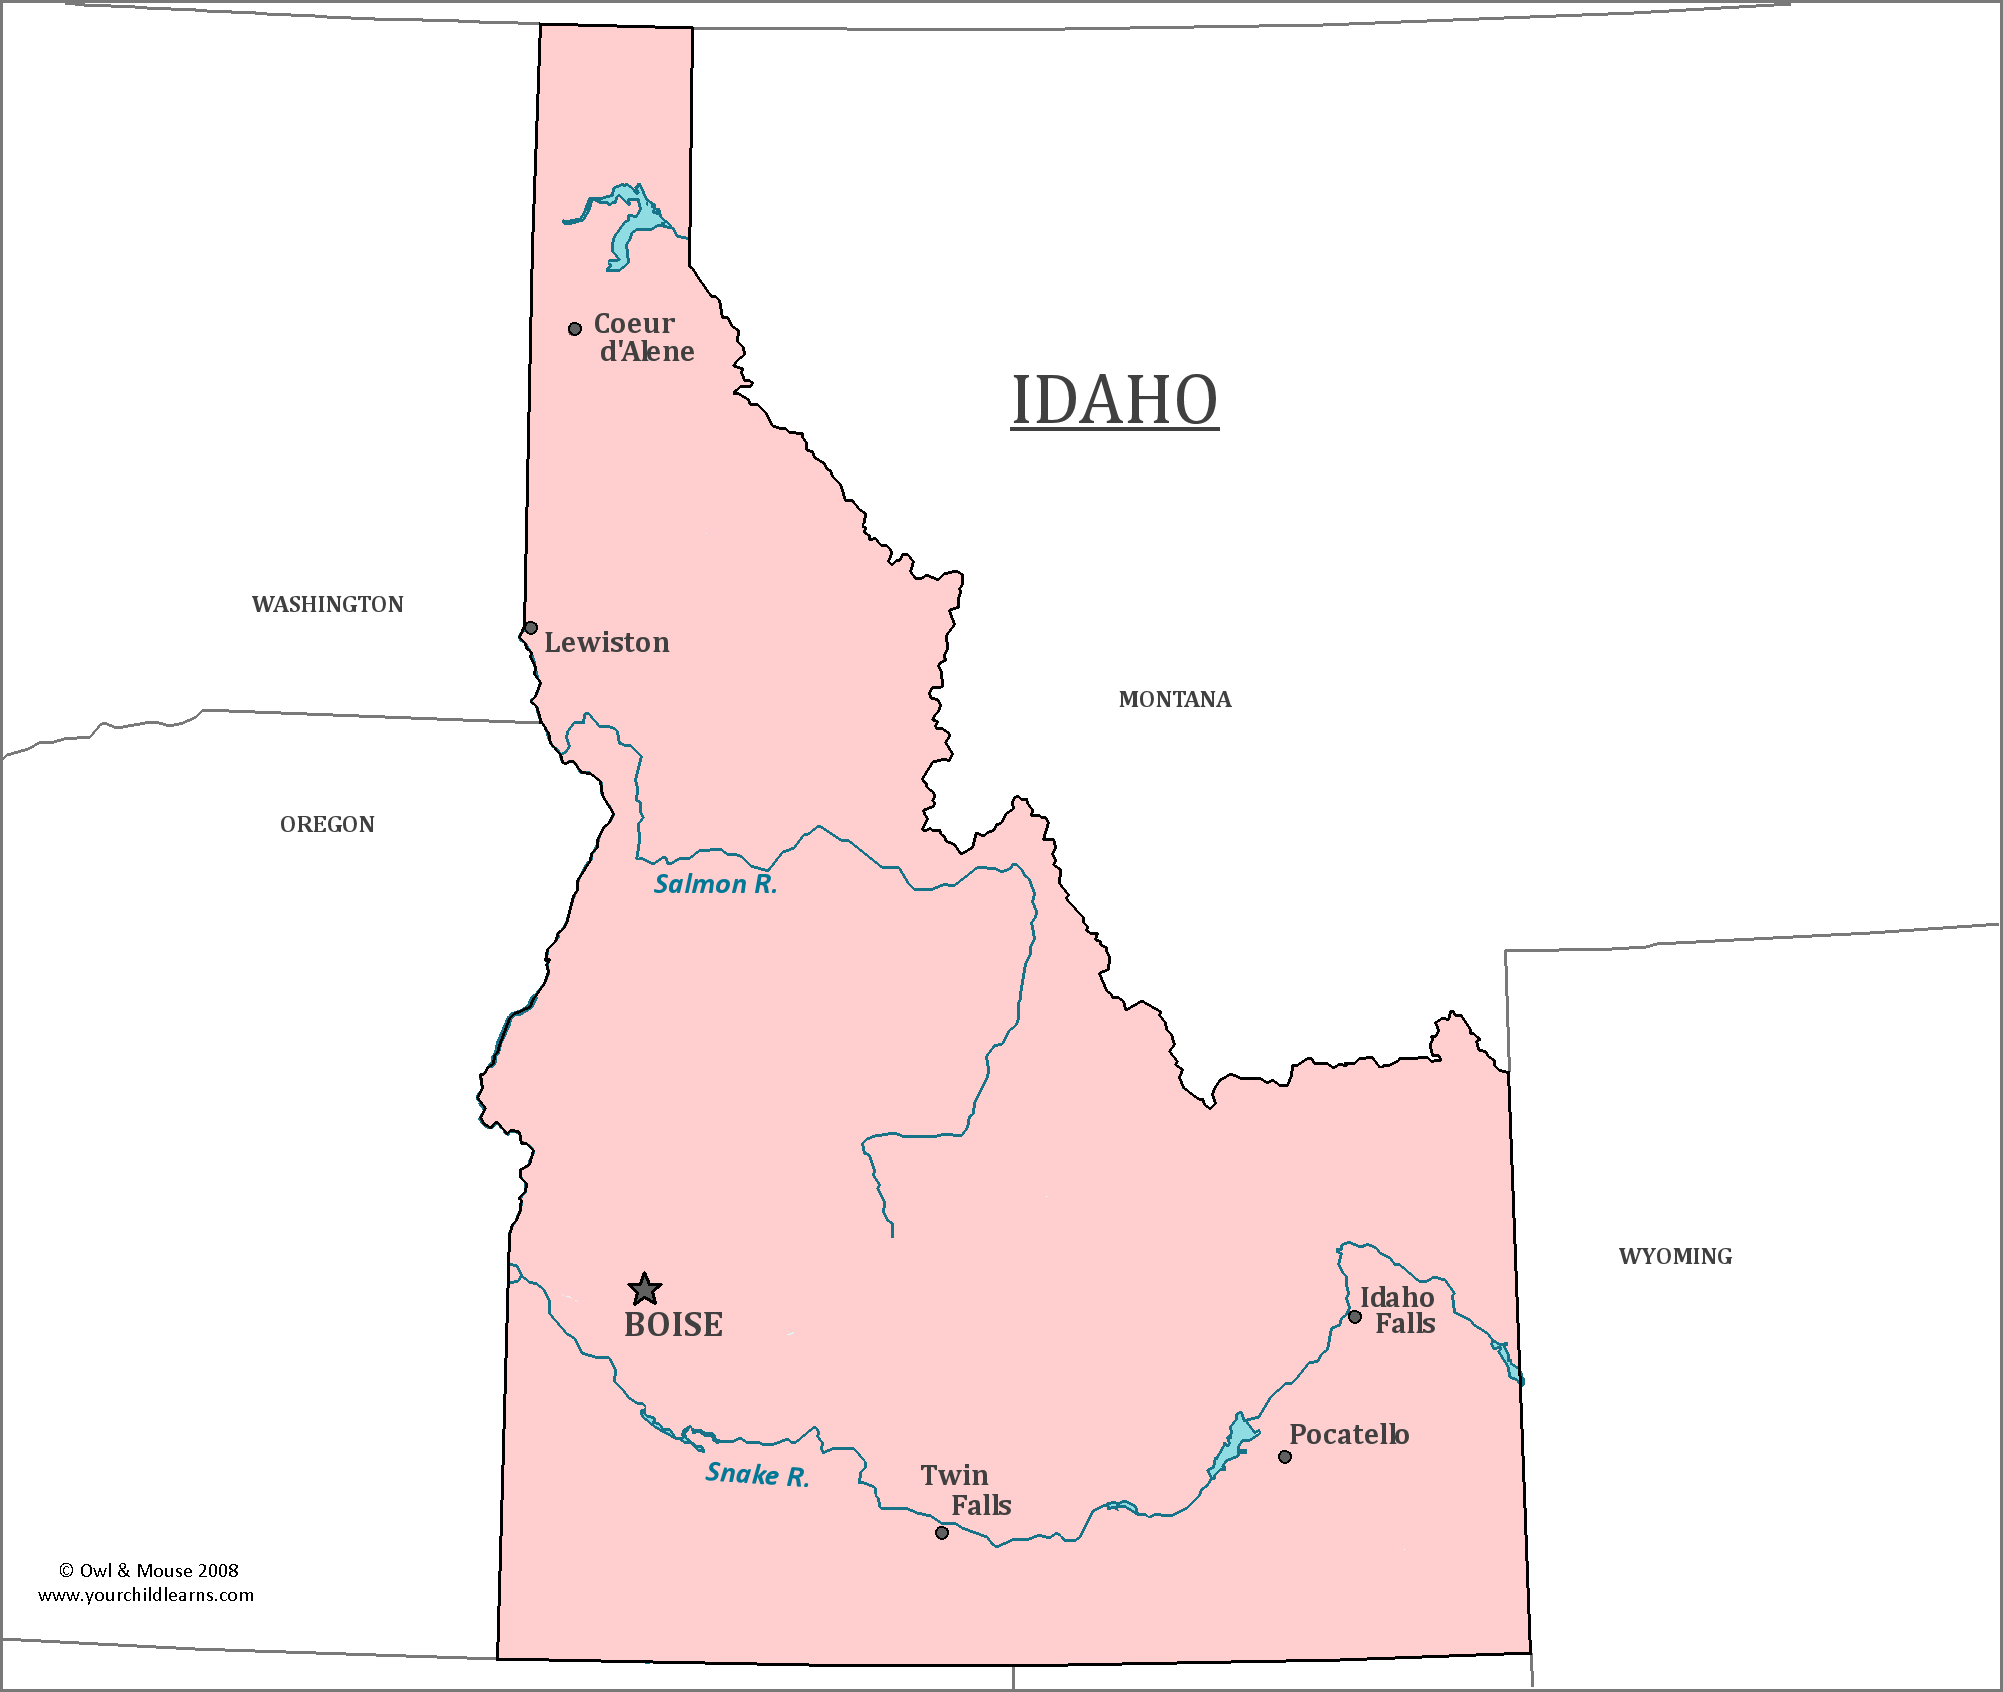 Idaho State Map Map Of Idaho And Information About The State - Map of idaho with cities